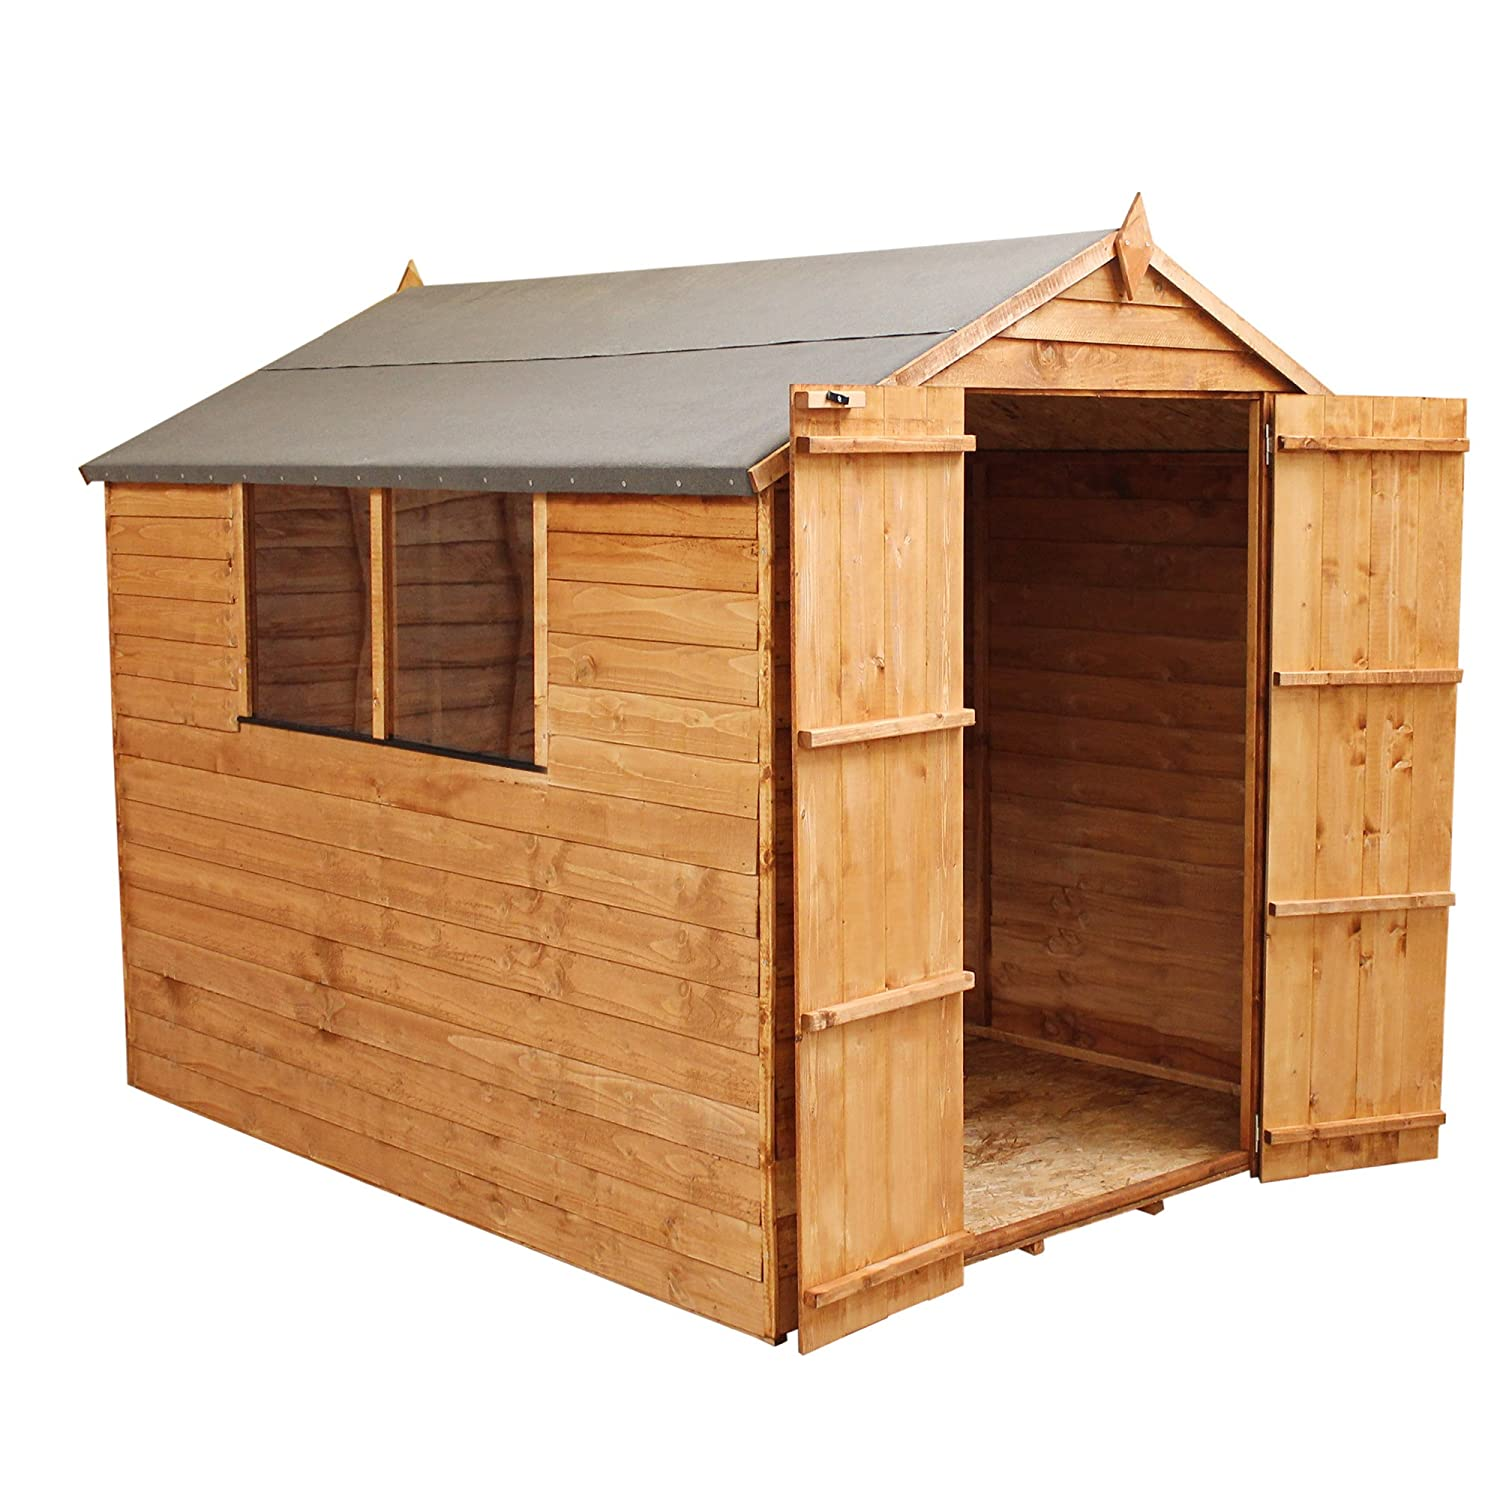 1878 8x6 Wooden Garden Storage Shed, Overlap Construction Dip Treated With  10 Year Guarantee, With Window, Double Door, Apex Roof, Roof Felt U0026 Floor  ...